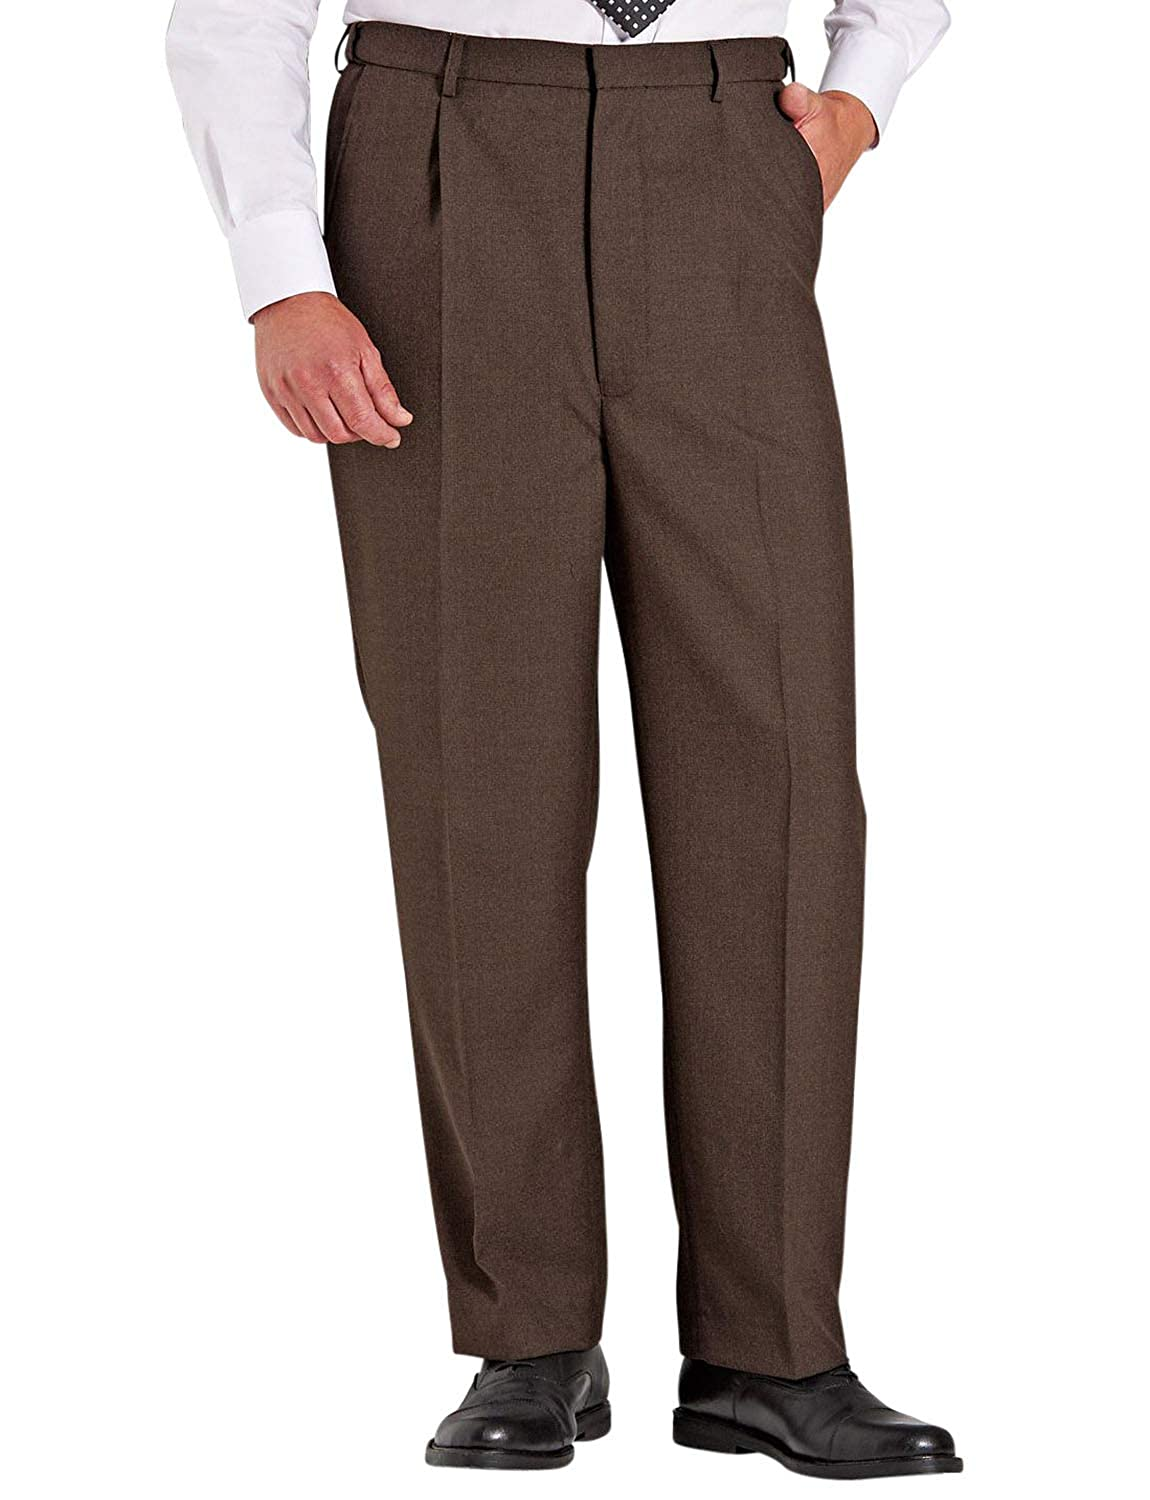 Retro Clothing for Men | Vintage Men's Fashion Chums Mens High Waisted Wool Blend Trouser Pants Stretch Waistband $48.79 AT vintagedancer.com